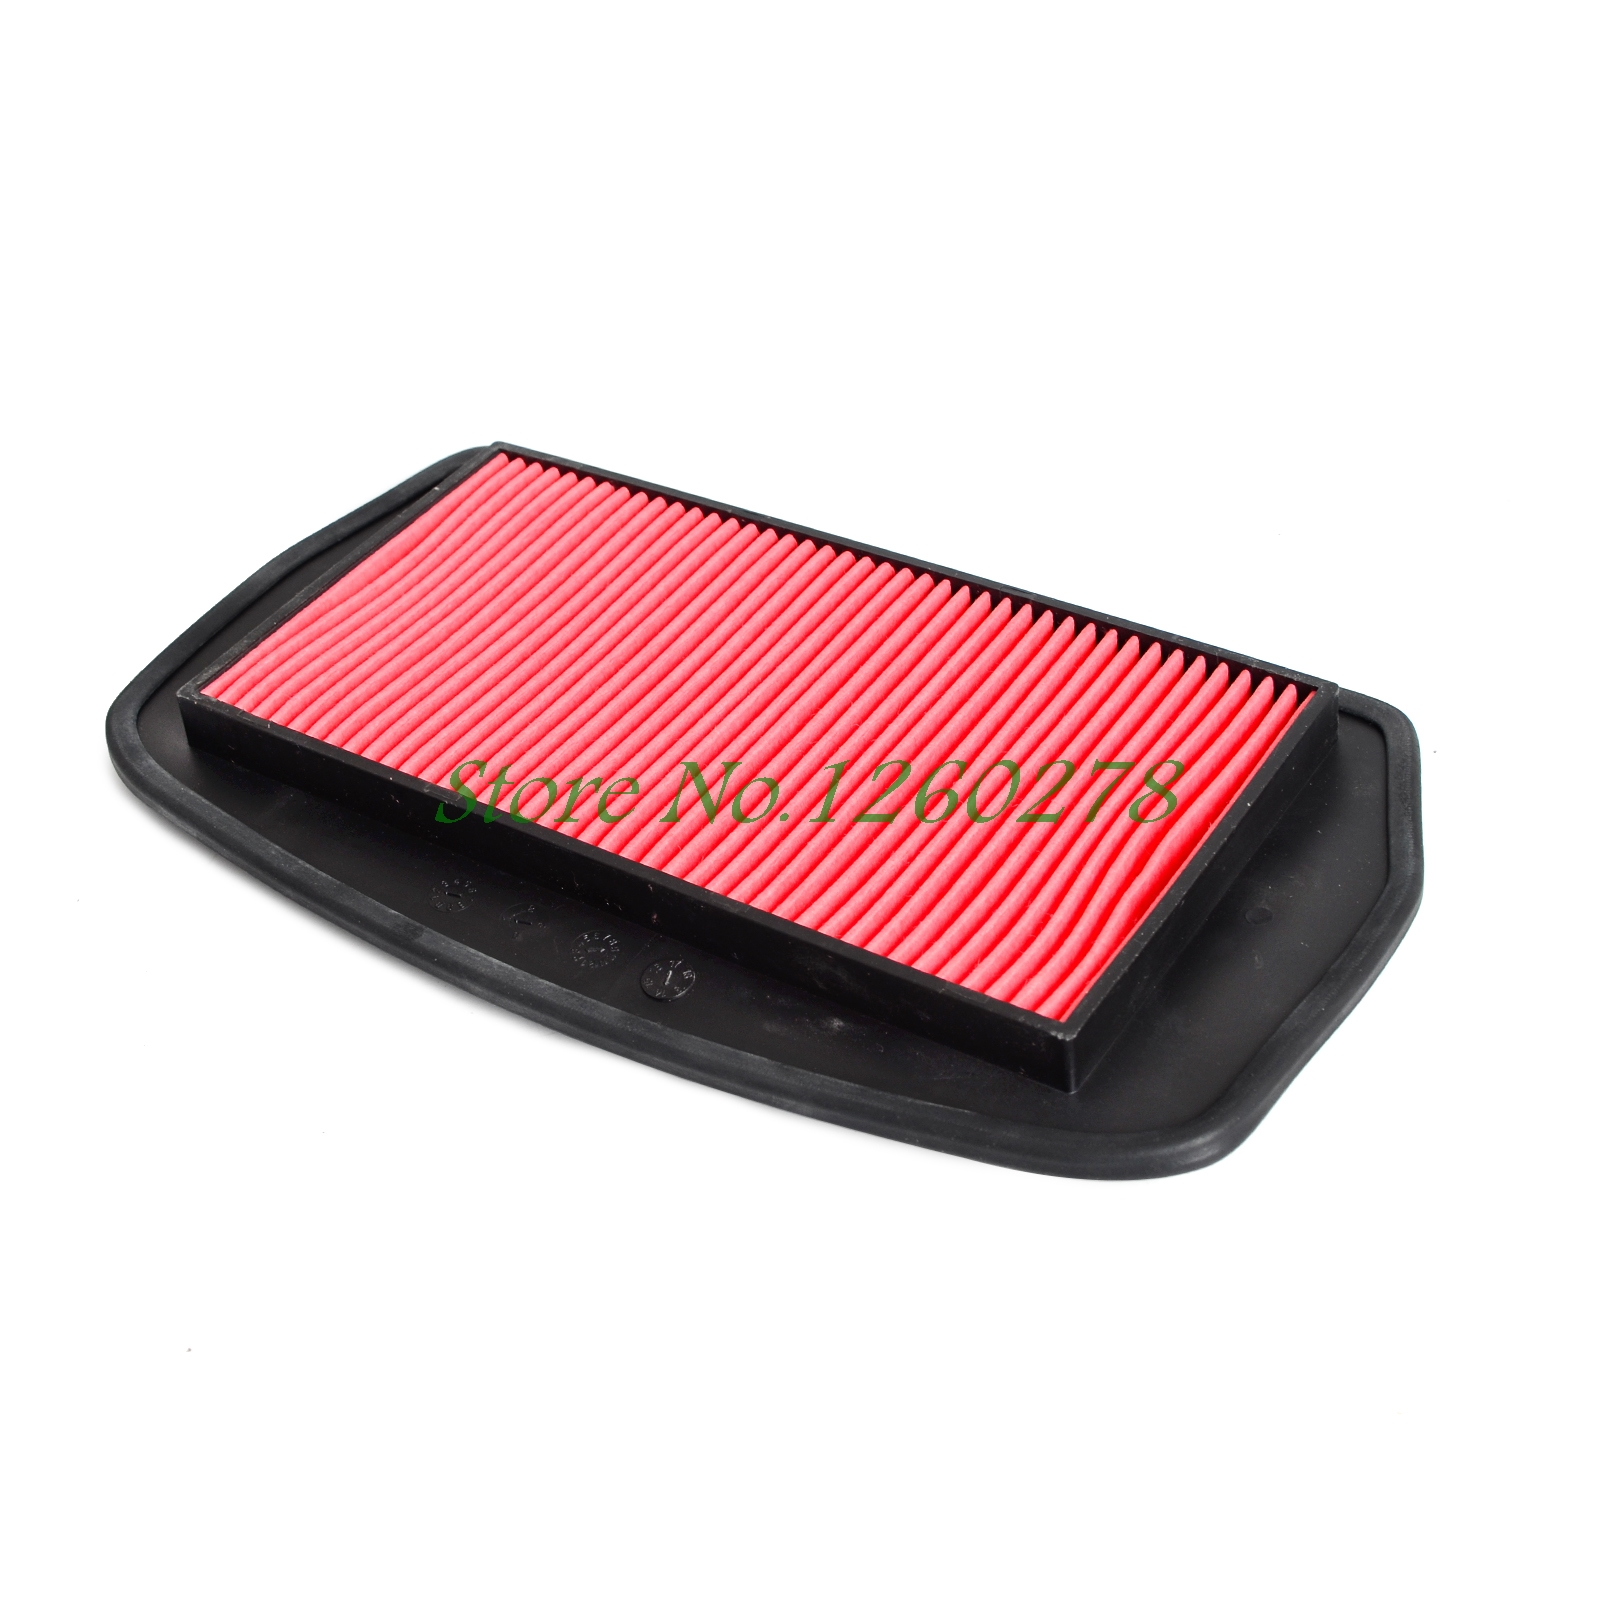 Air Cleaner Intake Filter Element For YAMAHA FZ6 600 S/N 2004 2005 2006 2007 2008 2009 2 ...